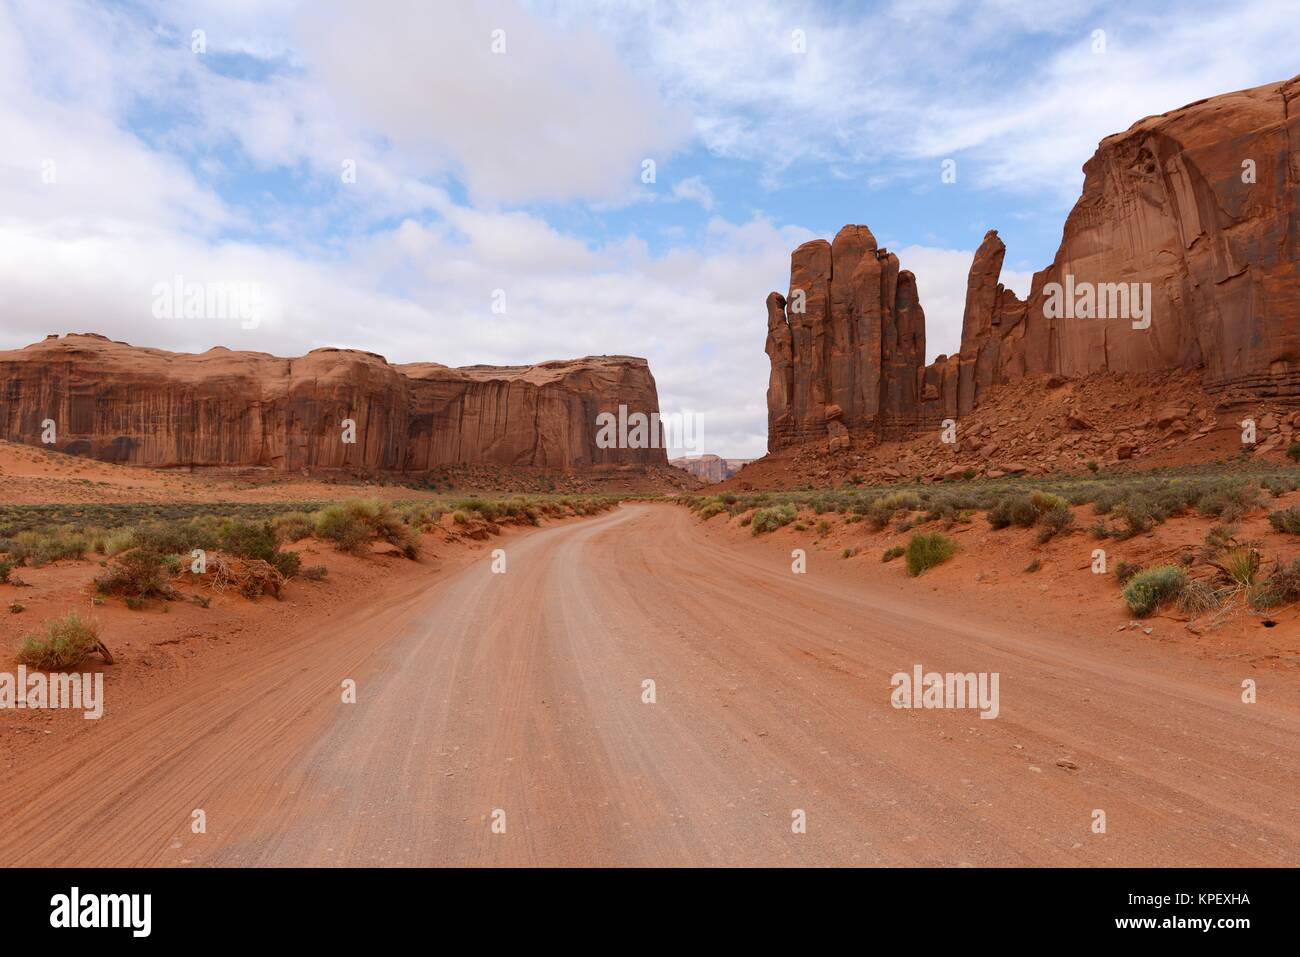 Red Desert Valley Road - A unpaved dirt road winding through red sandstone desert valley in the famous Monument - Stock Image